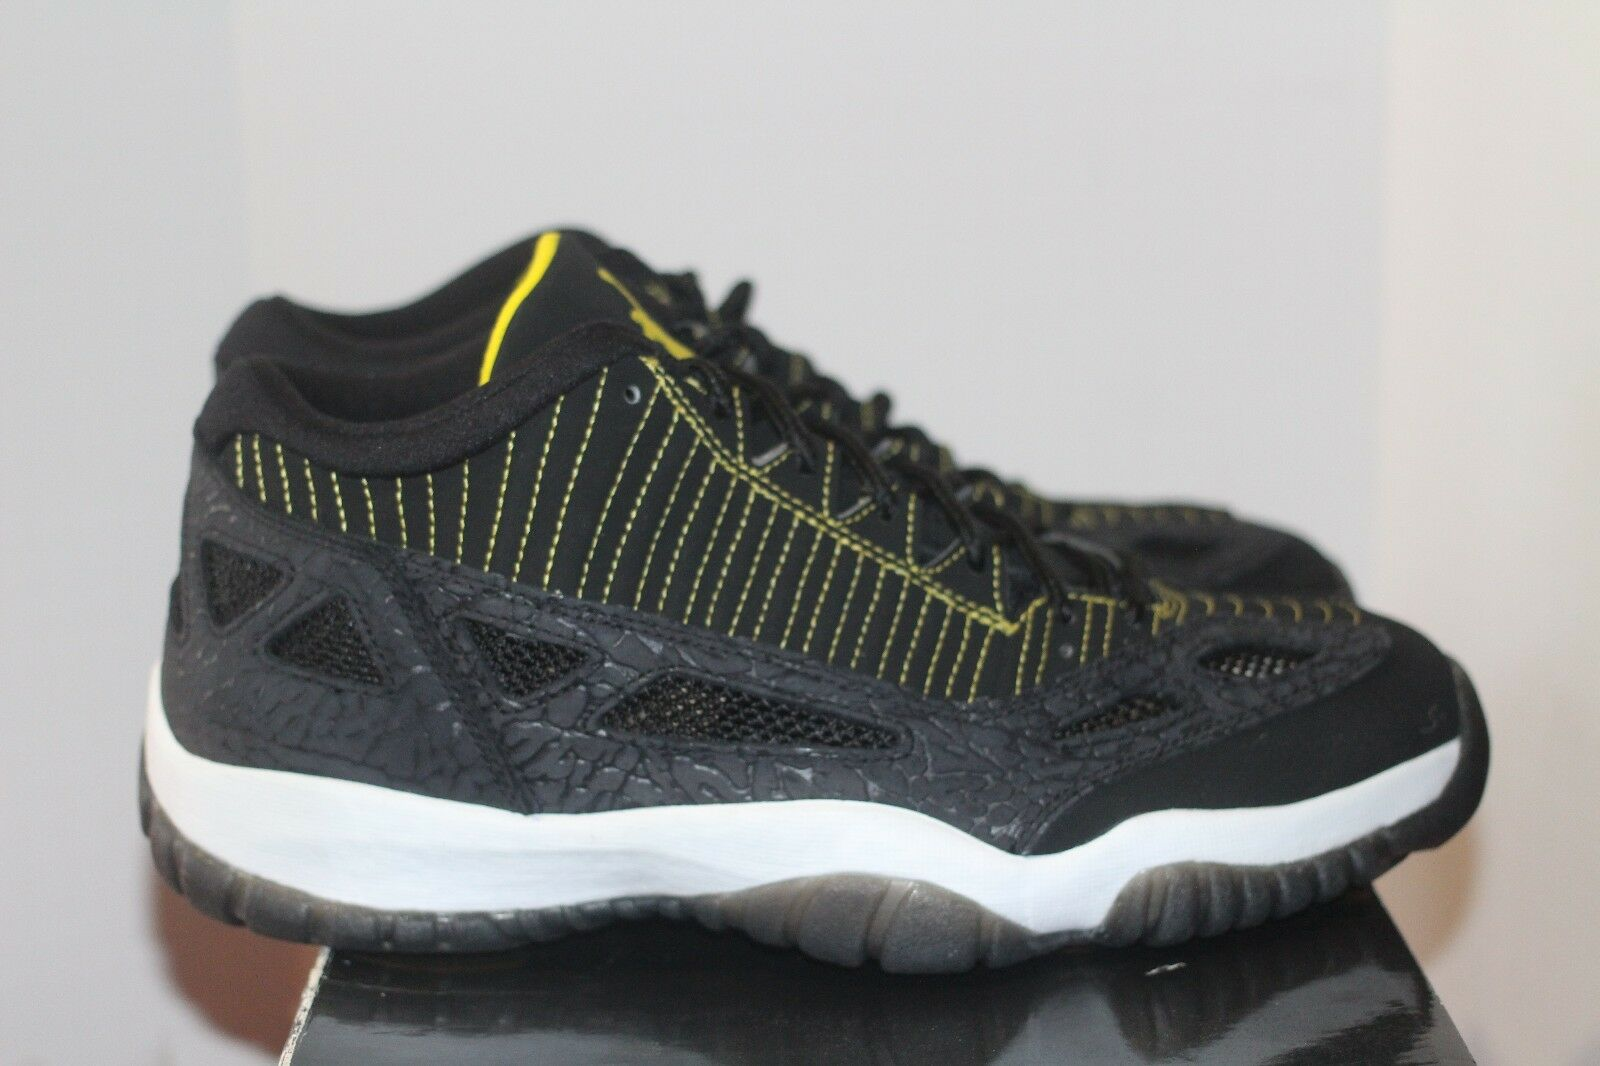 Air Jordan Retro XI Ie baja Pittsburgh talla nwb negro Zest Pittsburgh baja Steelers 800eb6